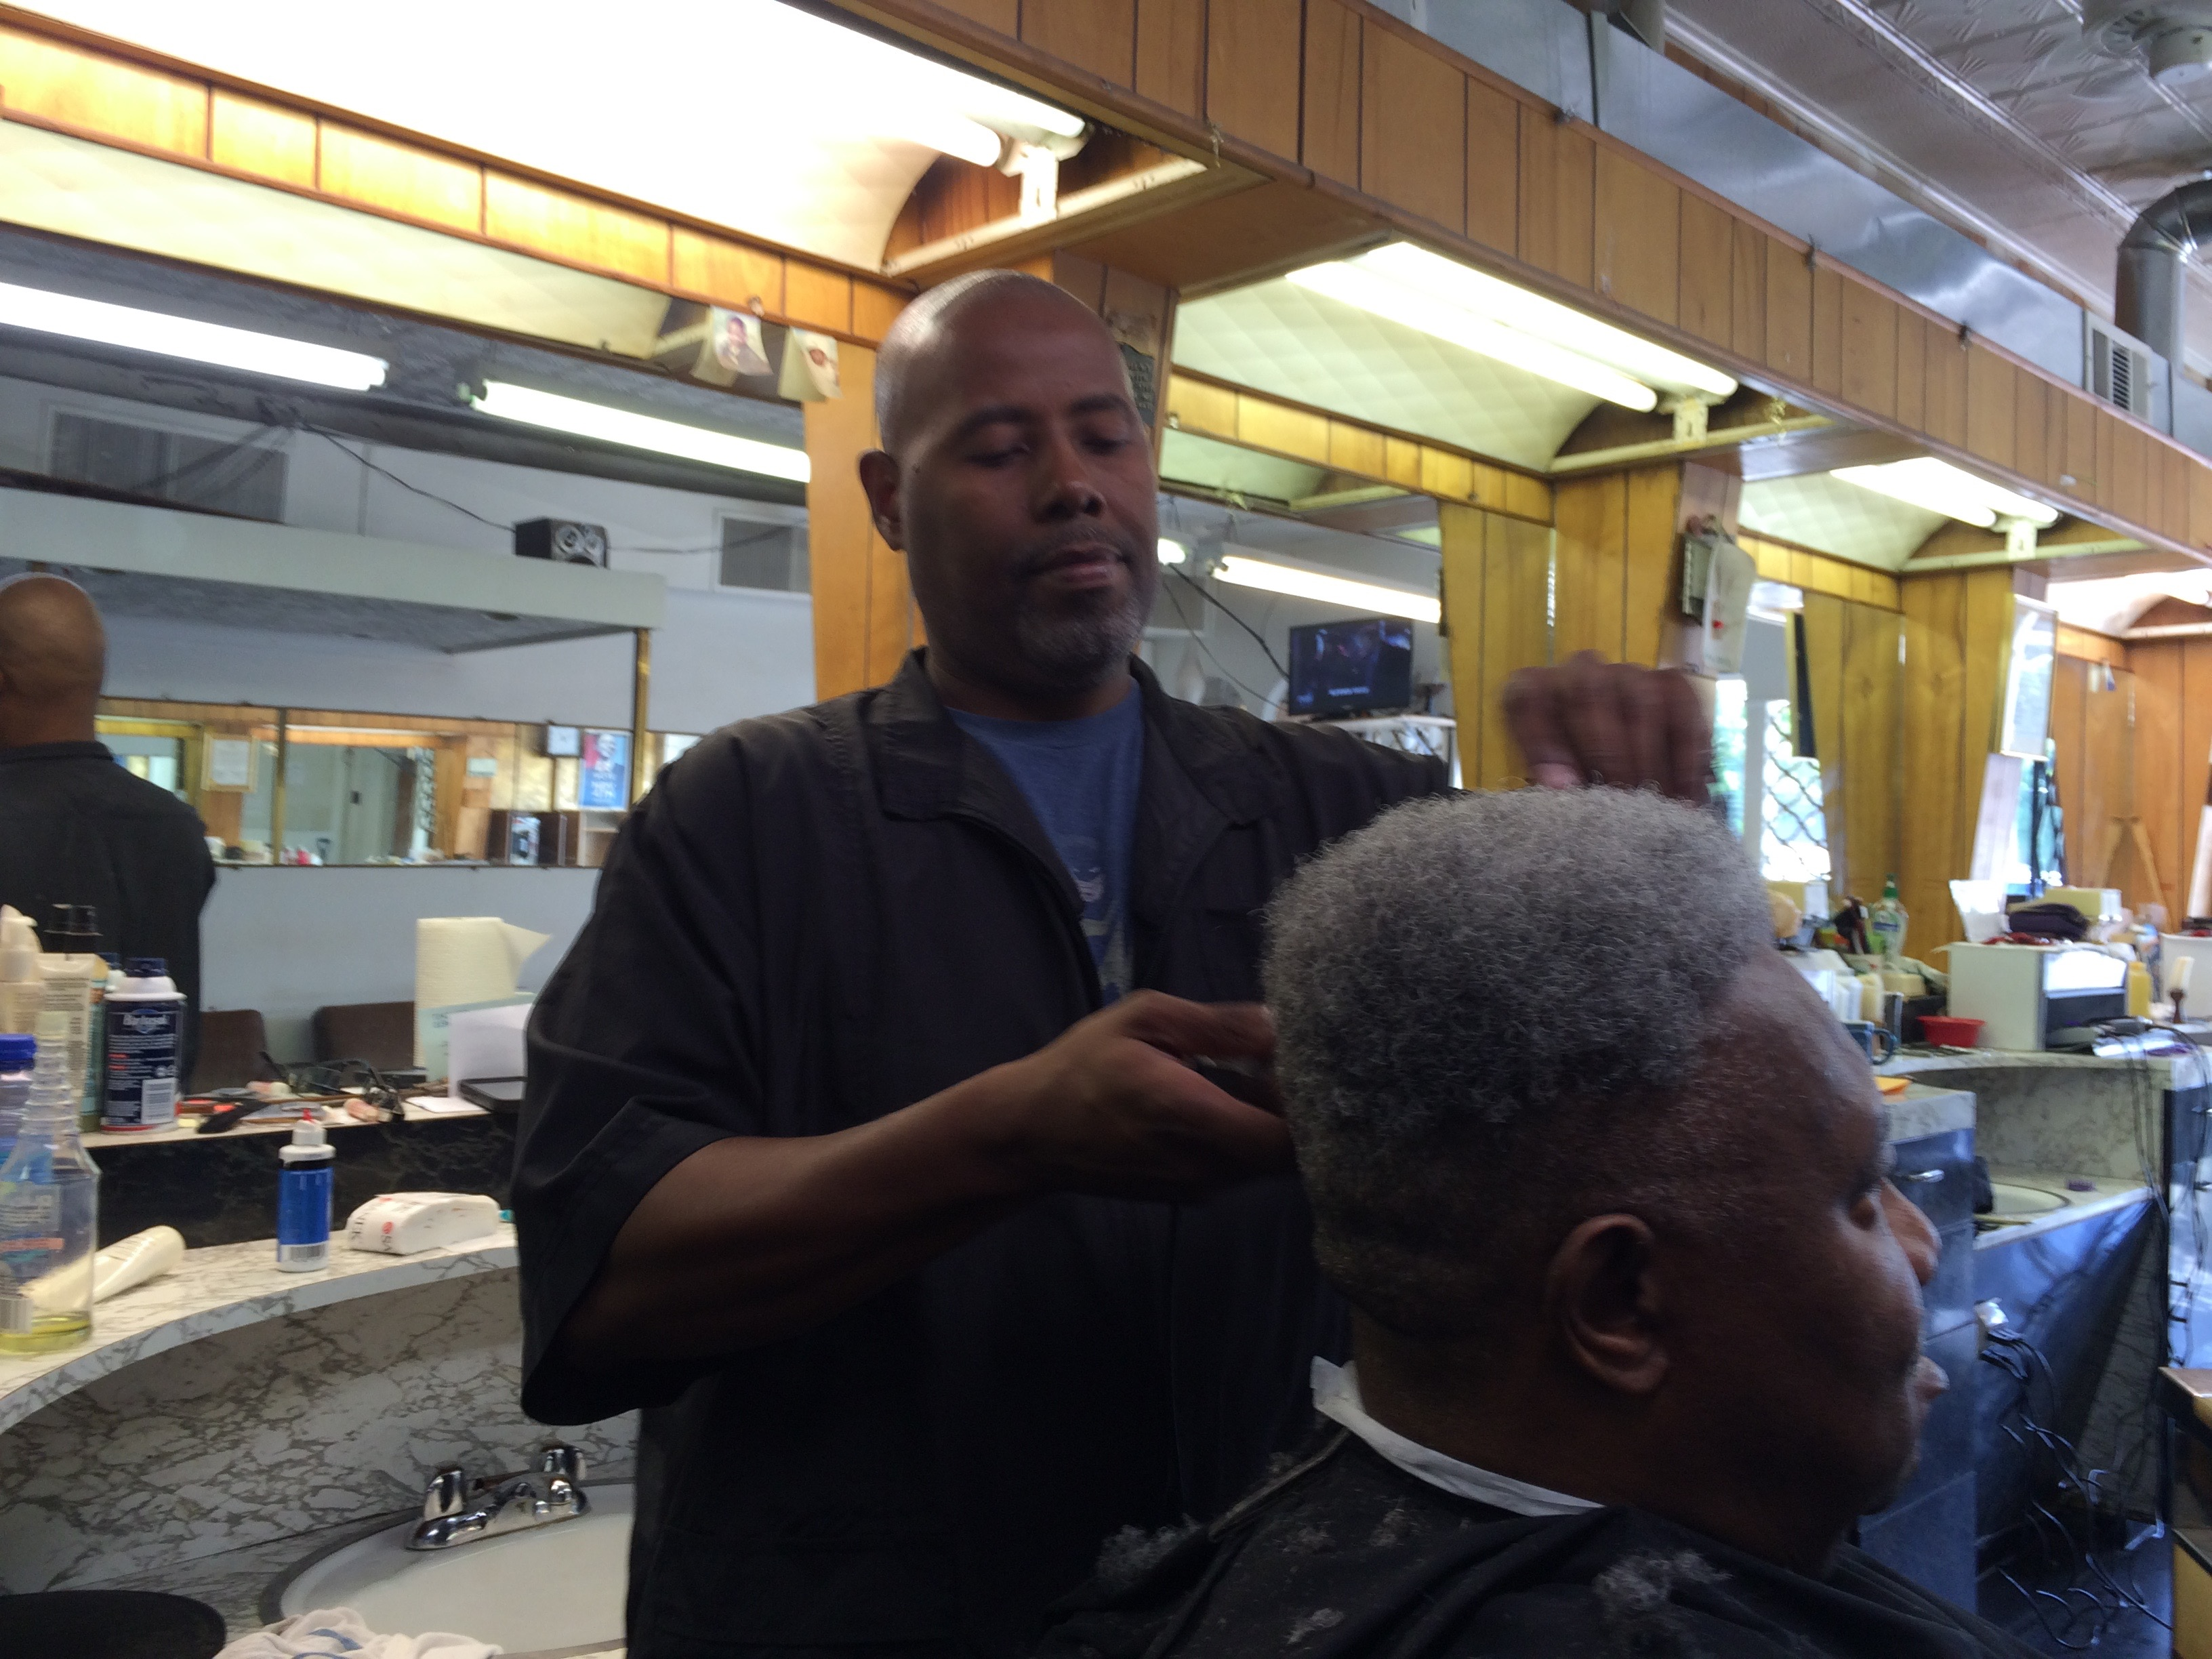 Kenneth Dixon at work in the family business, Dixon's Barber Shop, which has been in existence for three generations. PHOTO CREDIT: Keith A. Owens